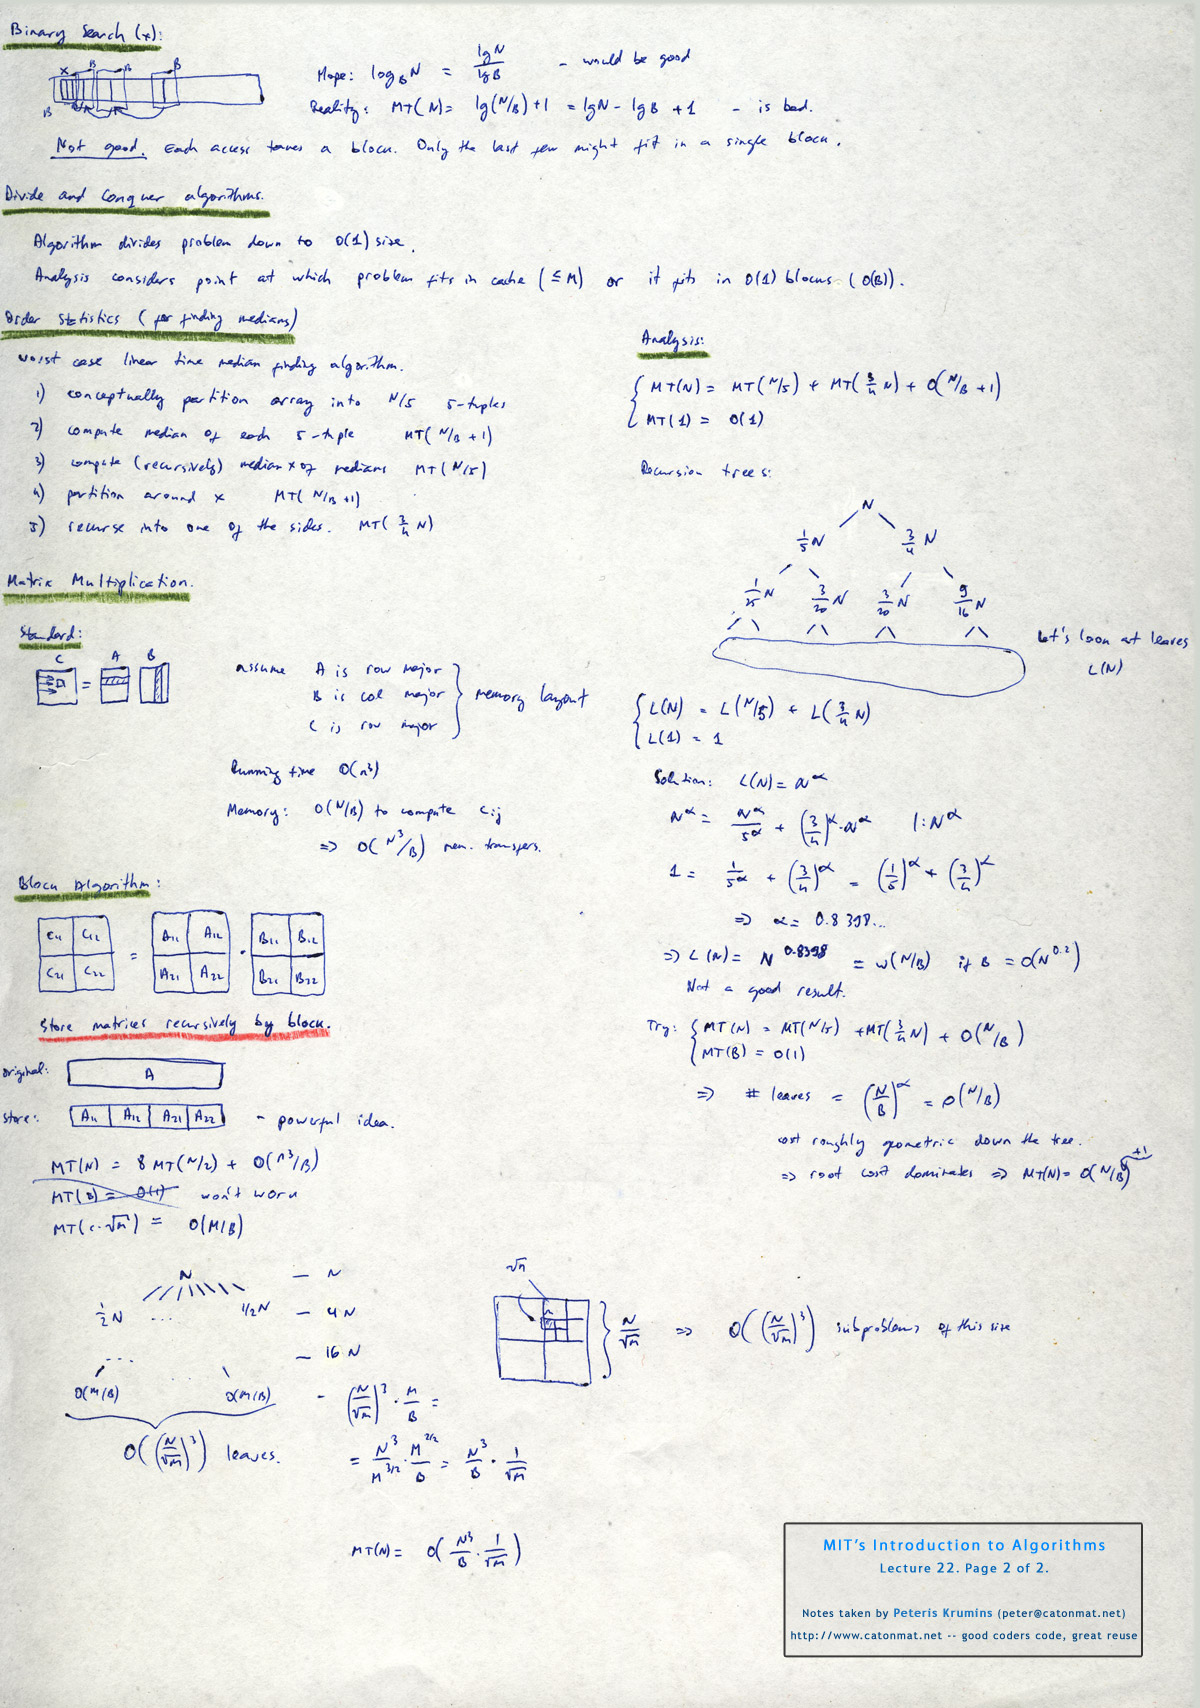 MIT's Introduction to Algorithms, Lectures 22 and 23: Cache